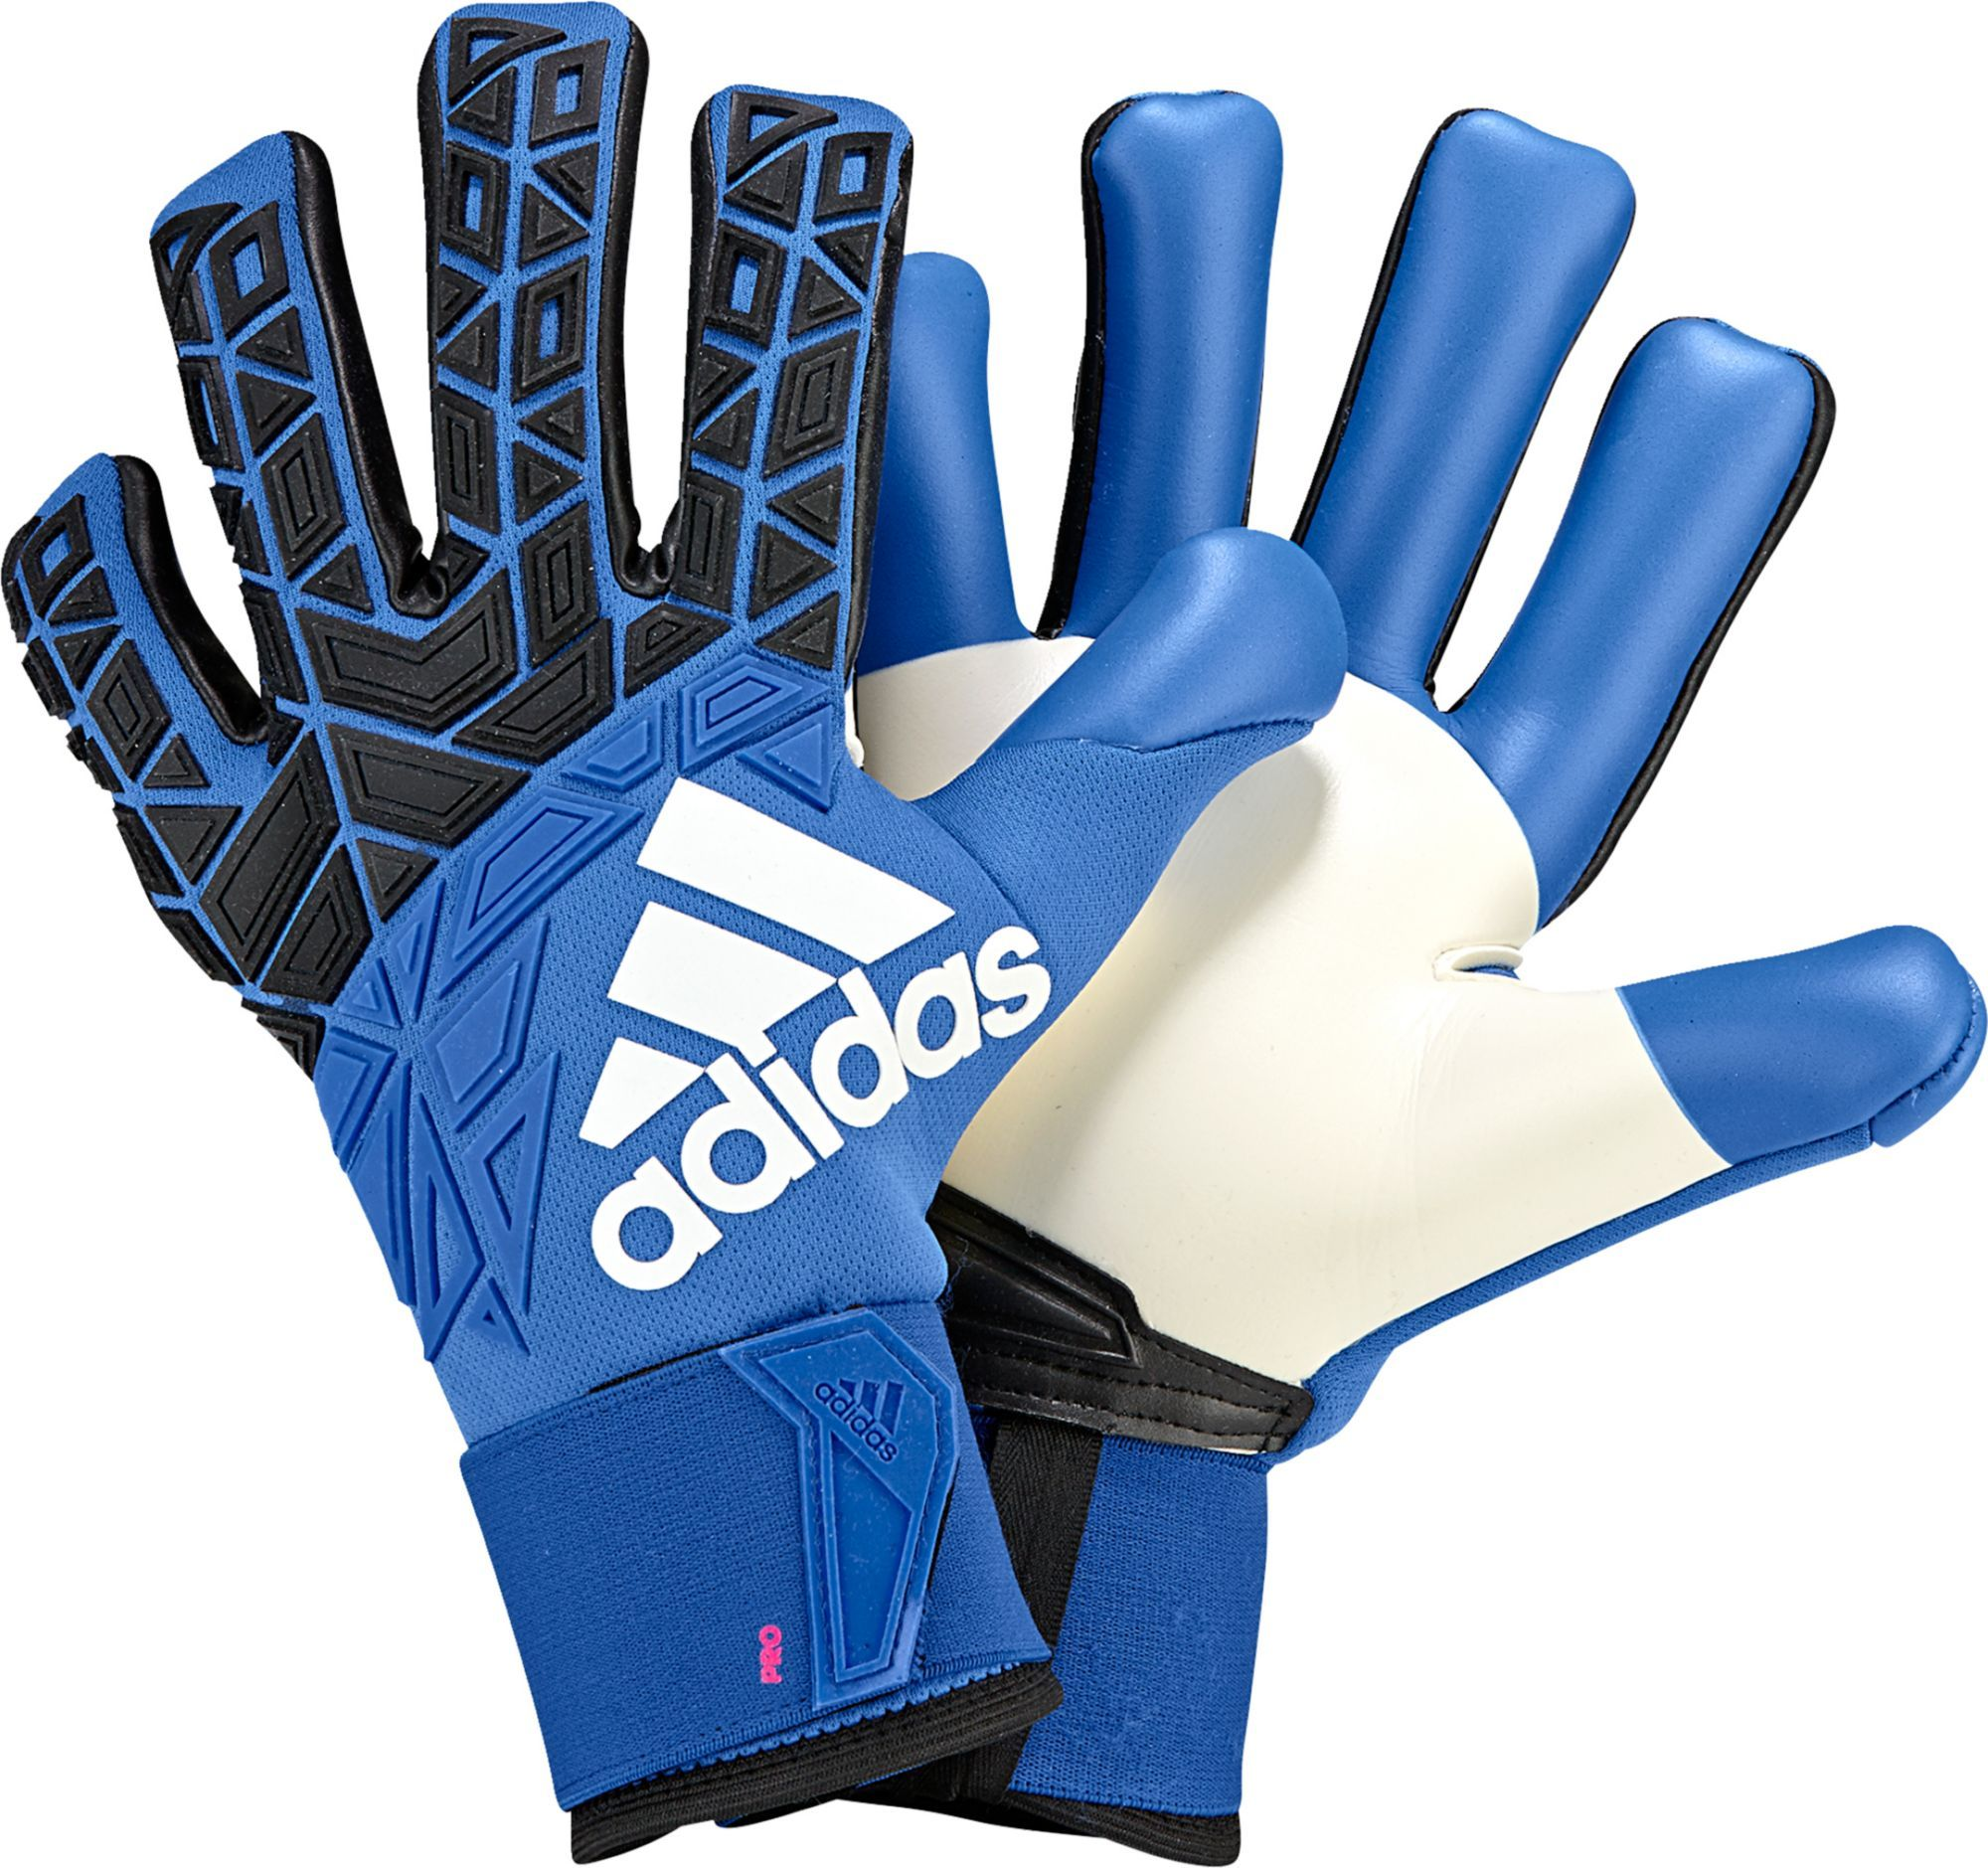 huge selection of 4e9a3 5c9a3 adidas Ace Trans Pro Soccer Goalkeeper Gloves | Products in ...